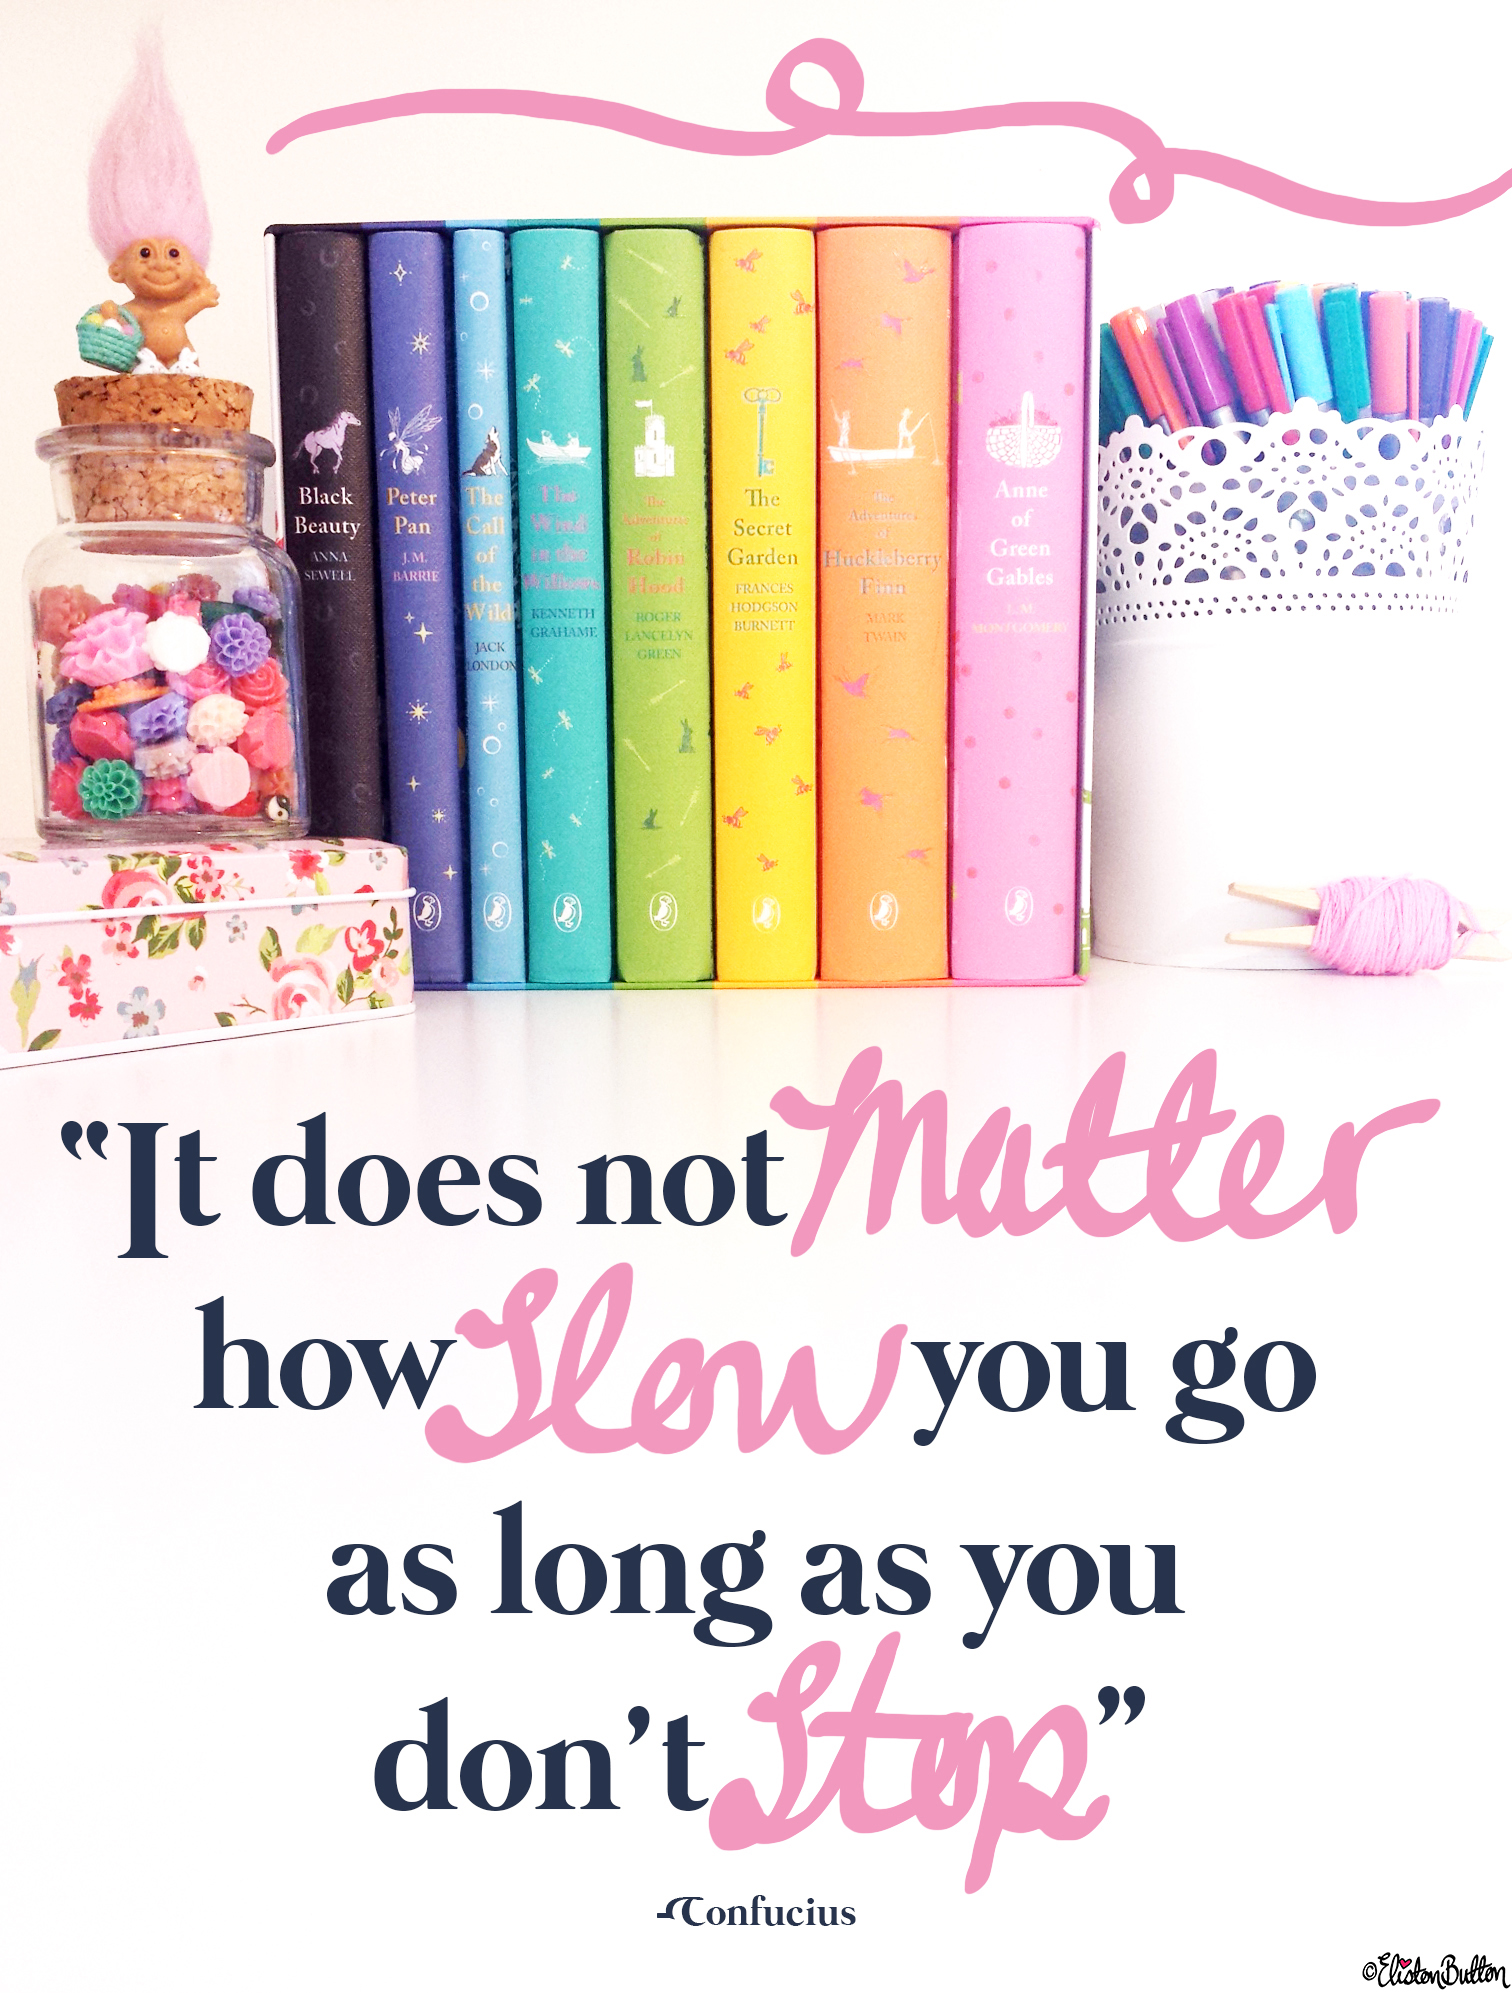 It Does Not Matter How Slow You Go - Confucius Quote - Eliston Button is 2 Years Old Today! at www.elistonbutton.com - Eliston Button - That Crafty Kid – Art, Design, Craft & Adventure.